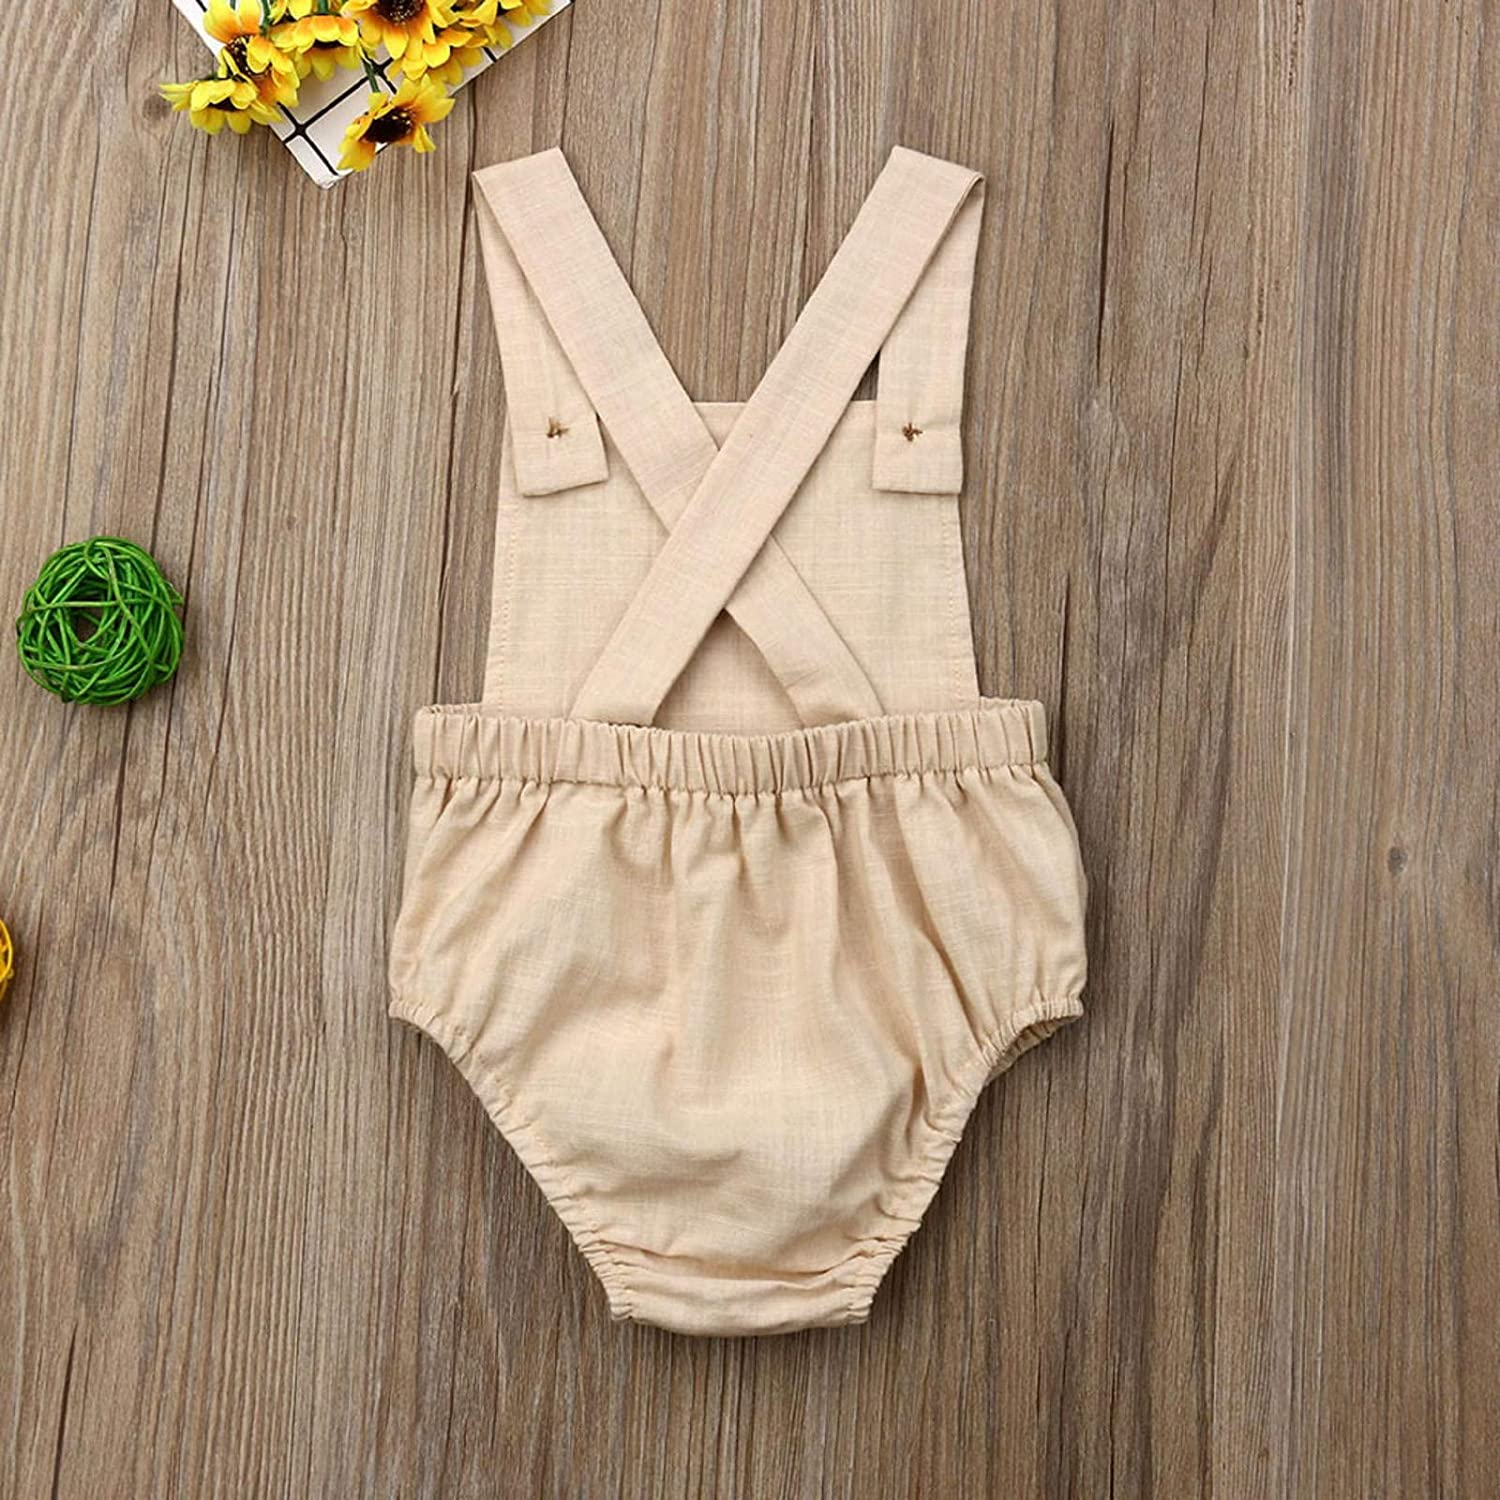 Amazon.com : Summer Toddler Infant Baby Boys Girls Solid Stripe ...